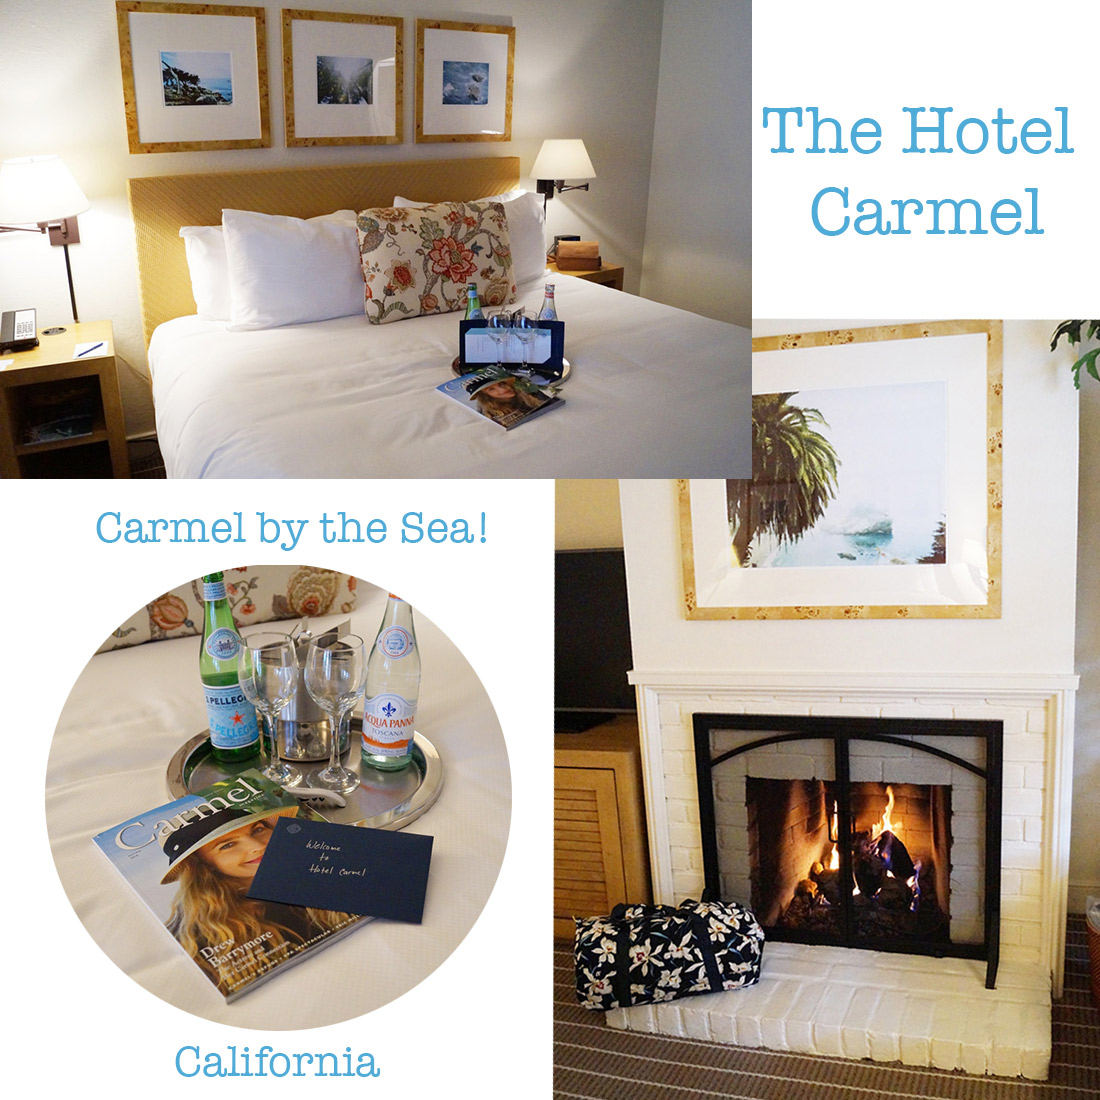 bag-at-you-travel-blog-welcome-hotel-carmel